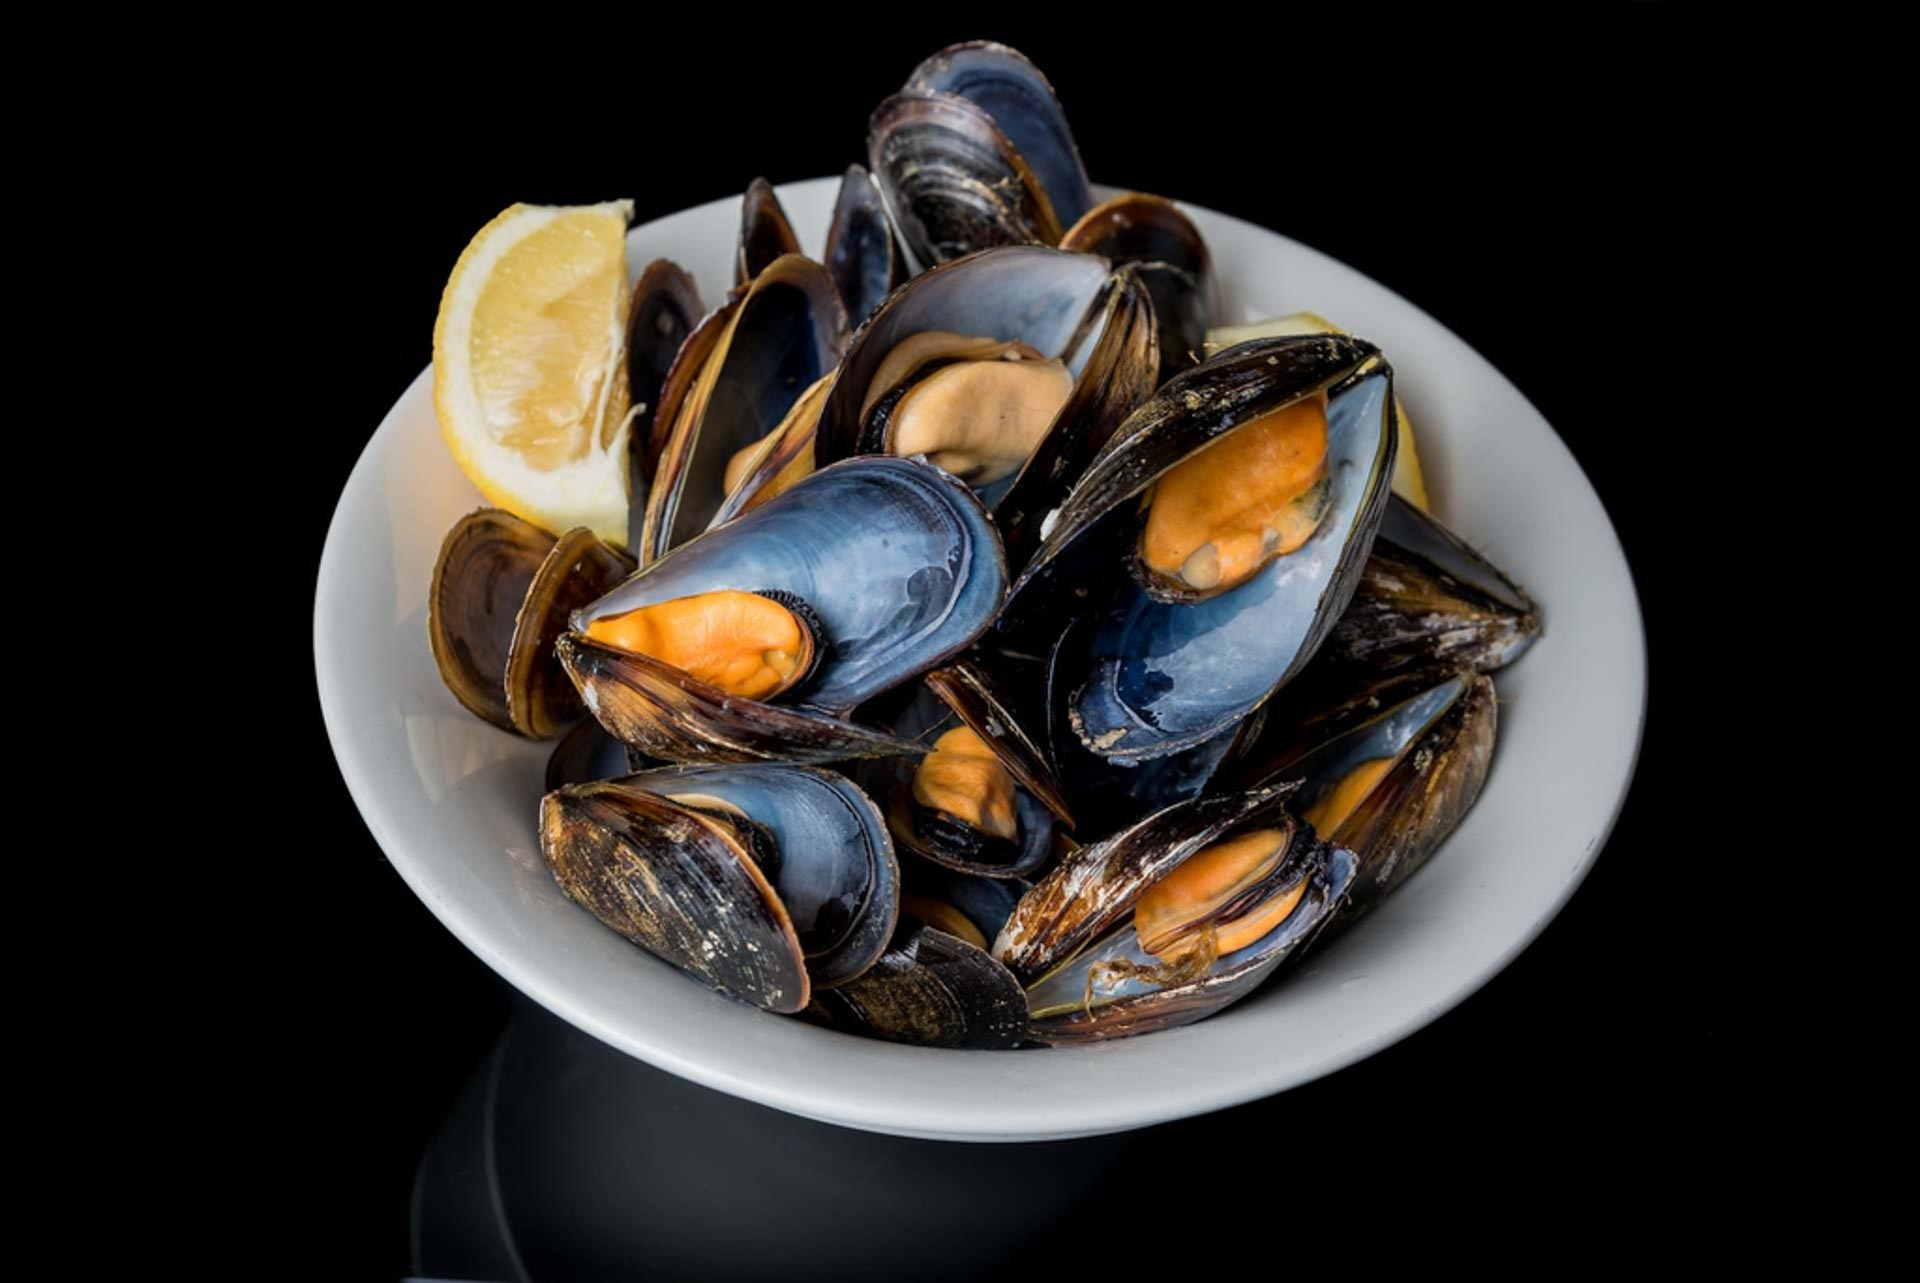 mussels from the great pulperia